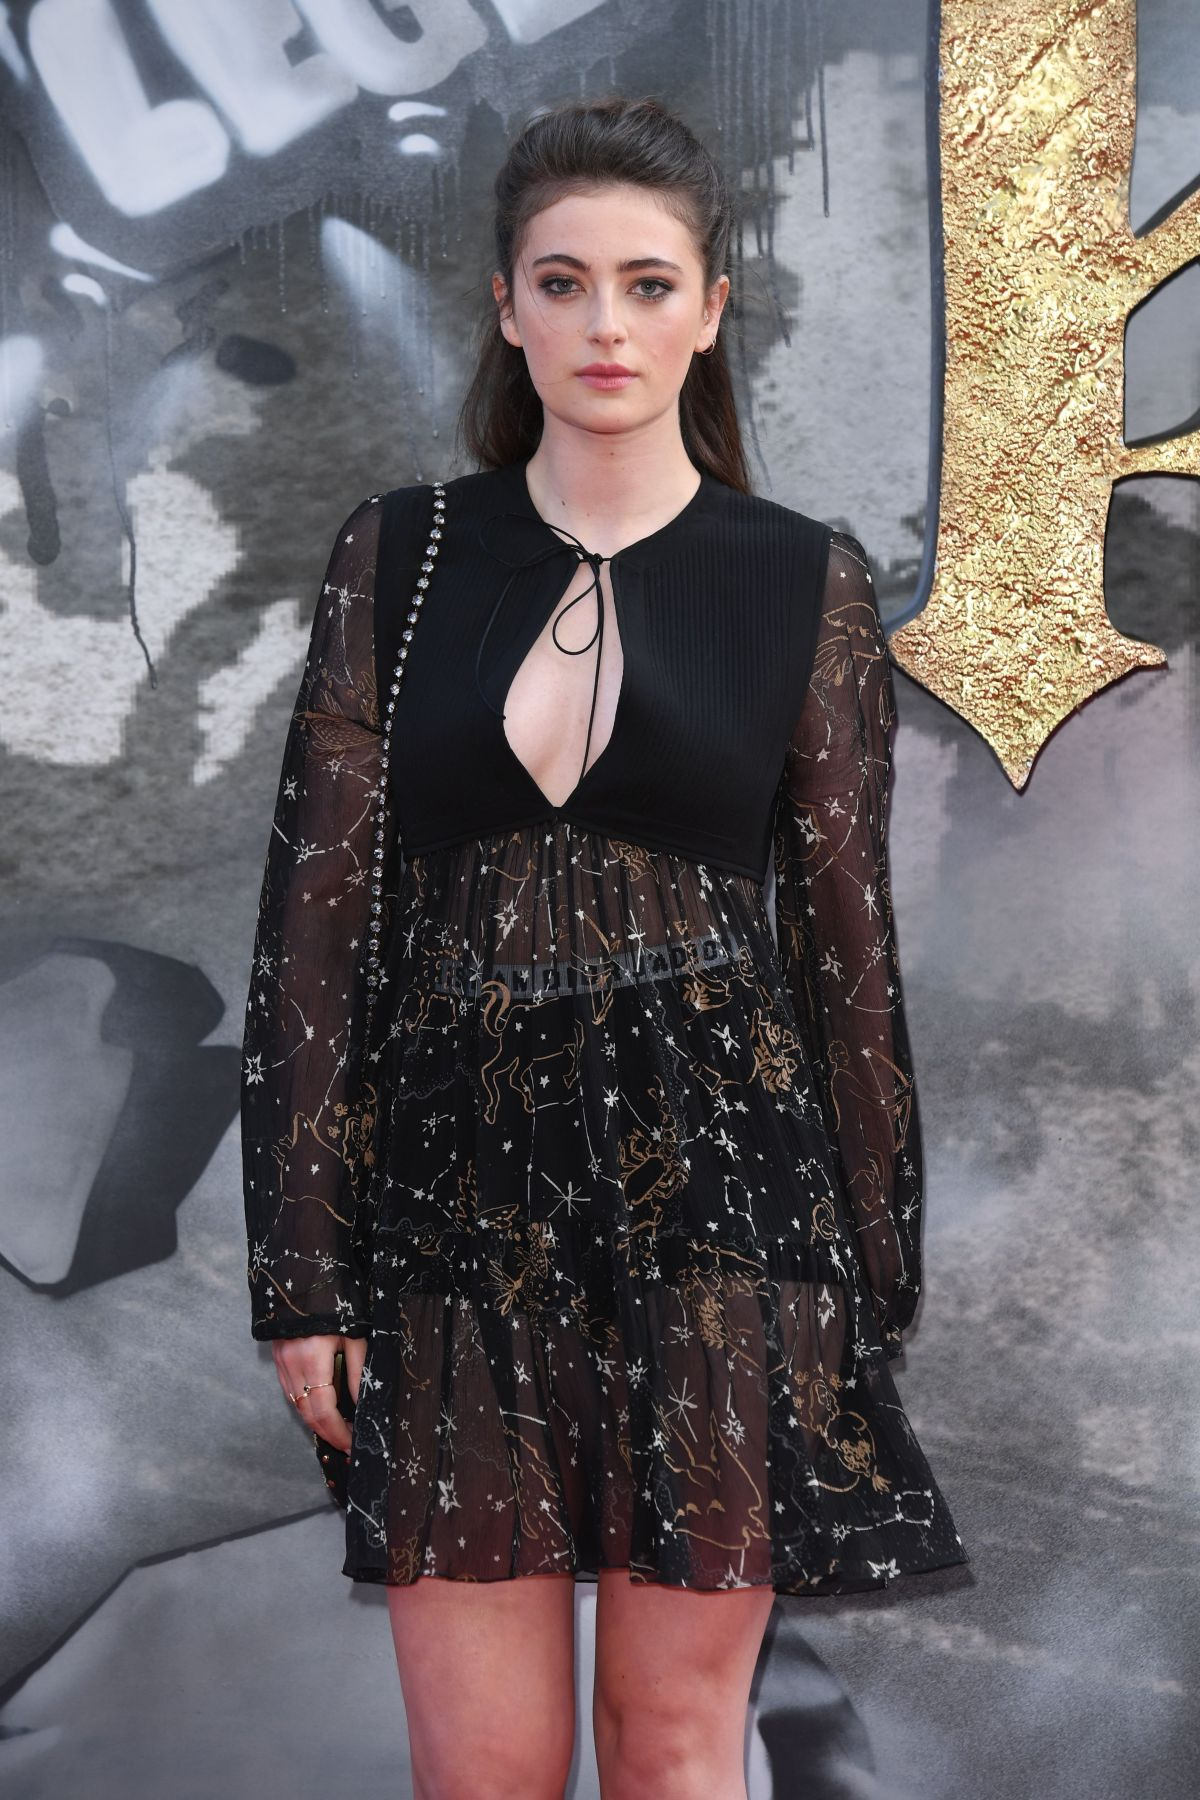 MILLIE BRADY at King Arthur: Legend of the Sword Premiere in London 05/10/2017